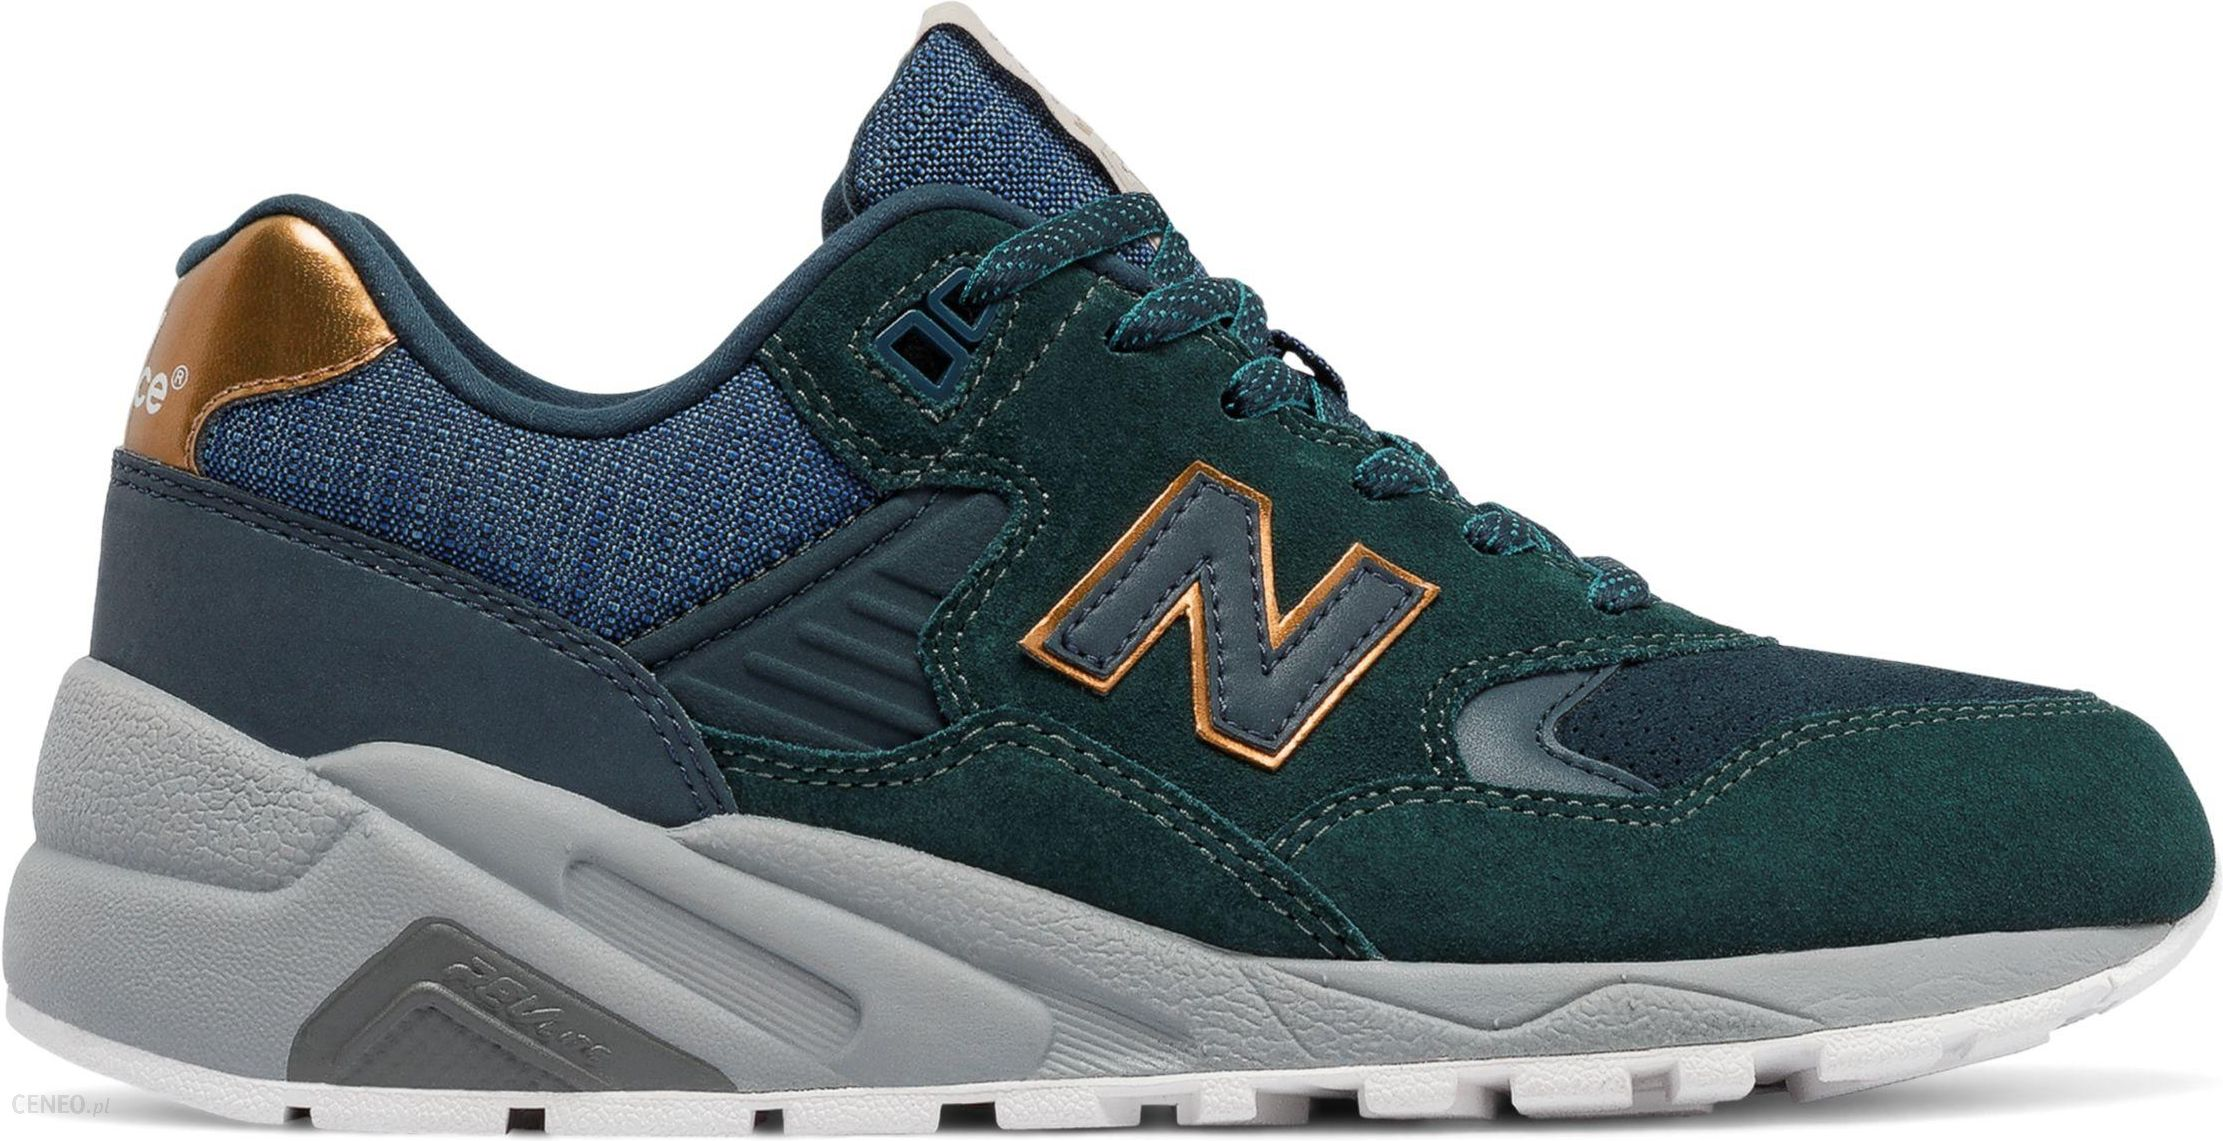 competitive price eac87 10223 New Balance 580 New Balance Green with Silver (WRT580JD) - Ceneo.pl